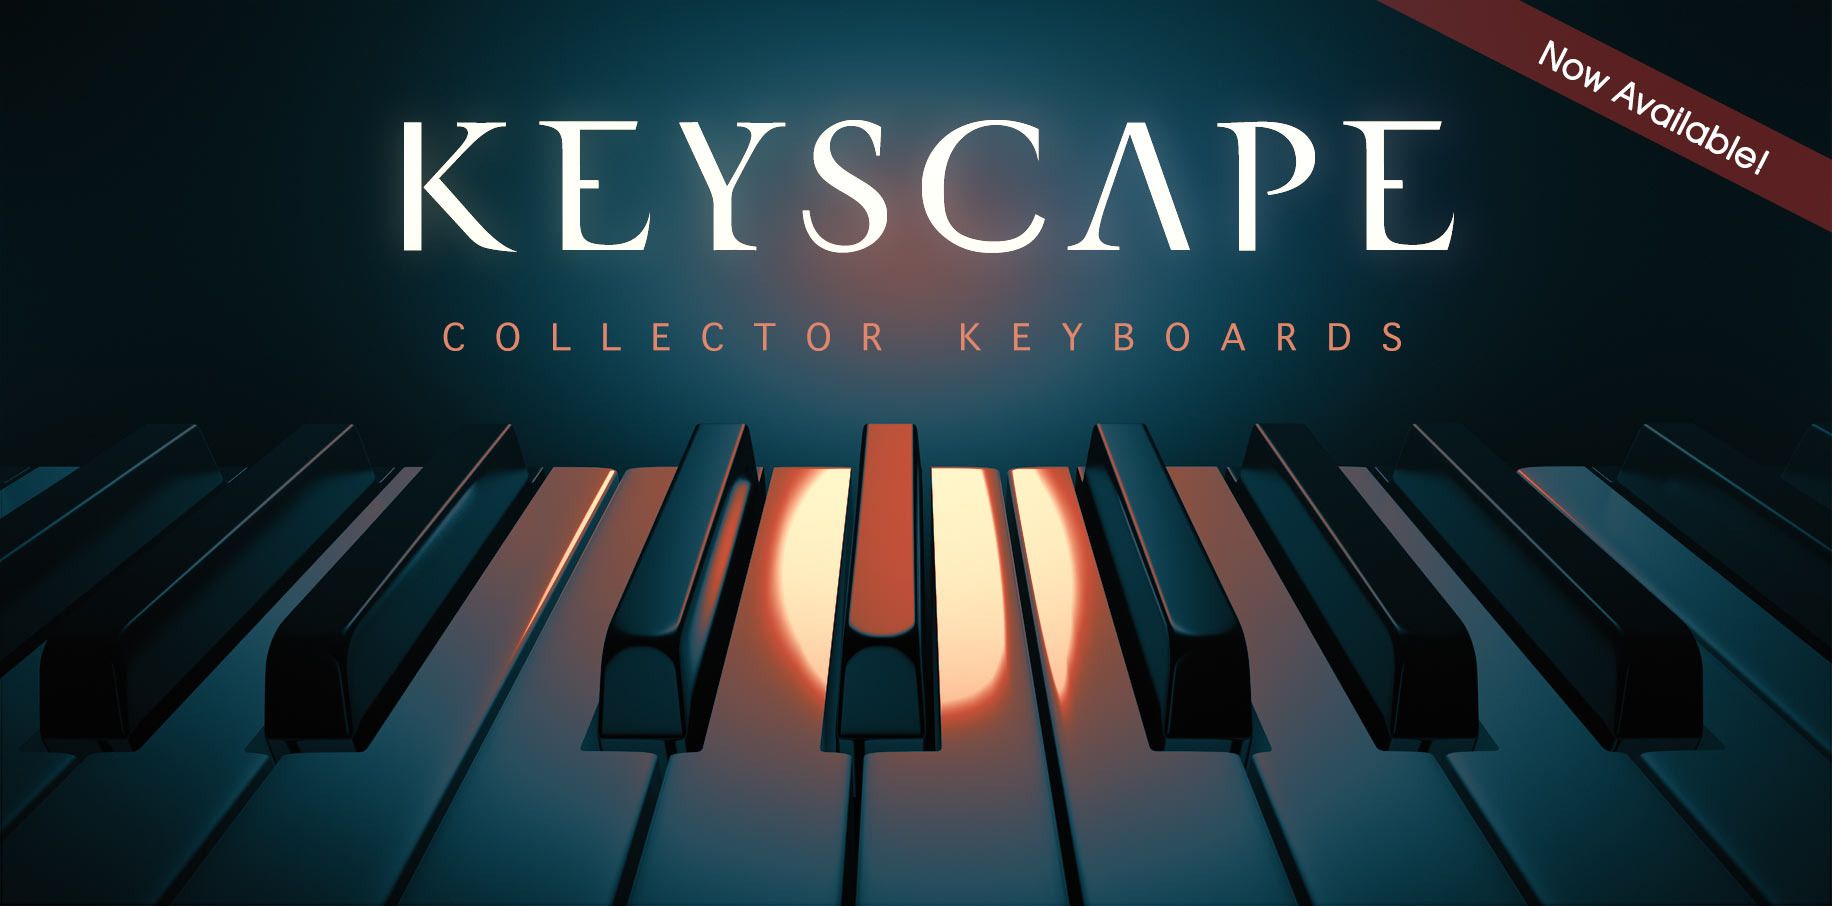 Keyscape - Collector Keyboards